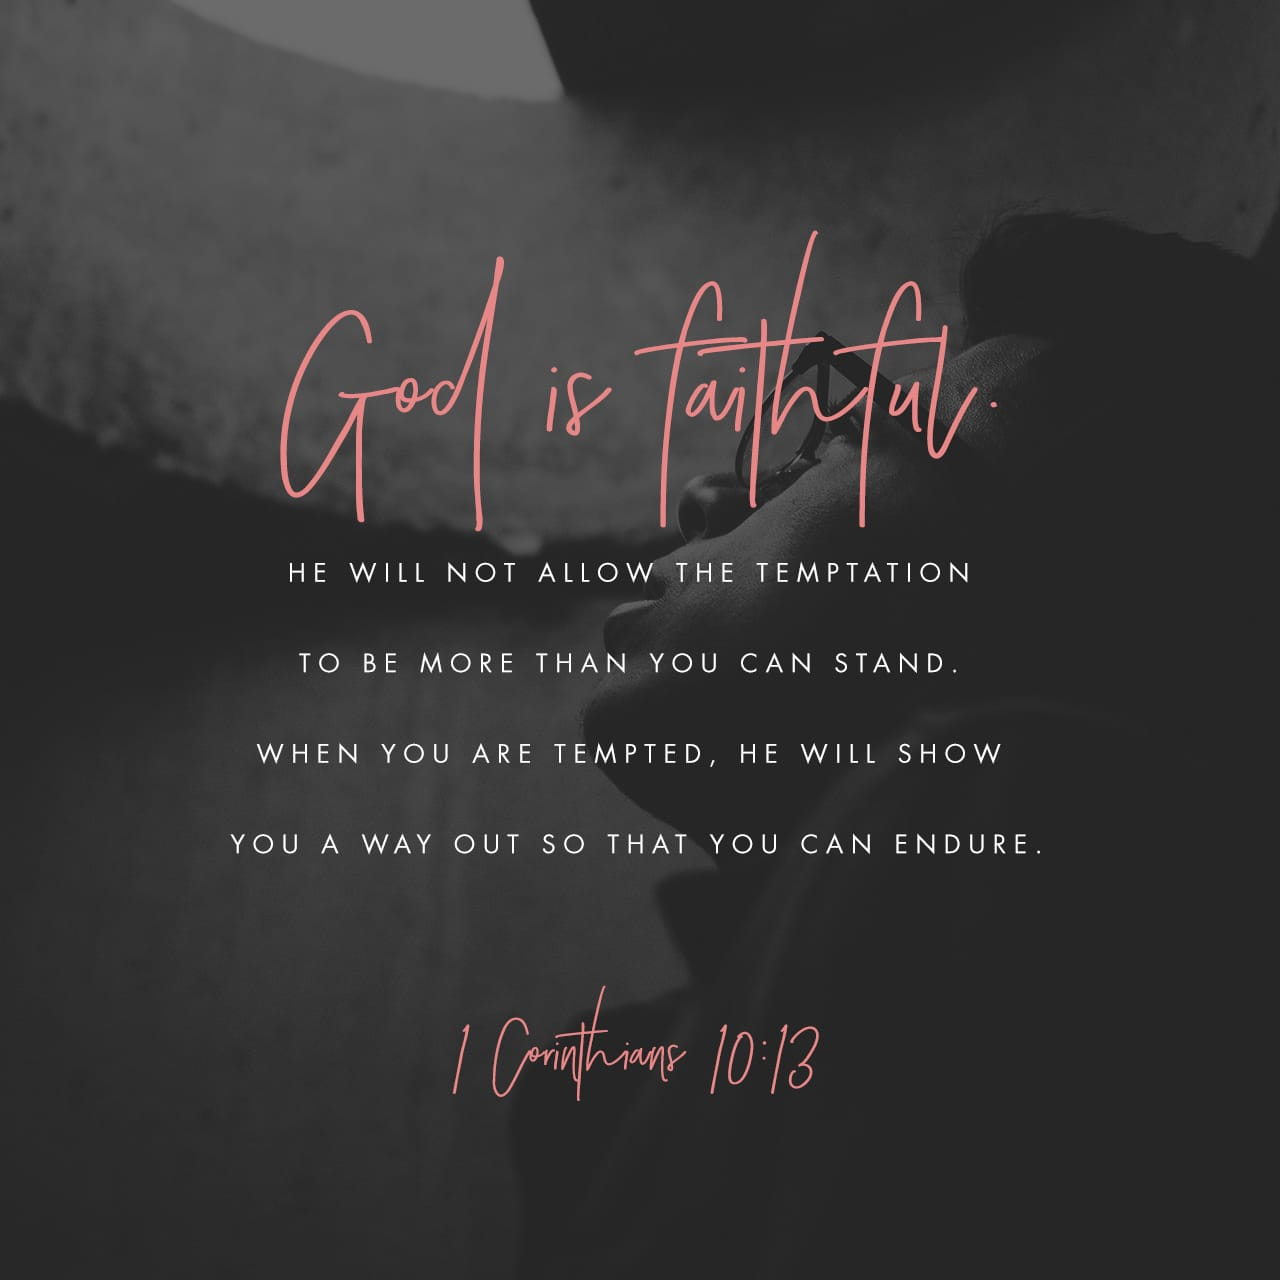 1 Corinthians 10:13 The temptations in your life are no different from what others experience. And God is faithful. He will not allow the temptation to be more than you can stand. When you are tempted, he will show you a | New Living Translation (NLT)